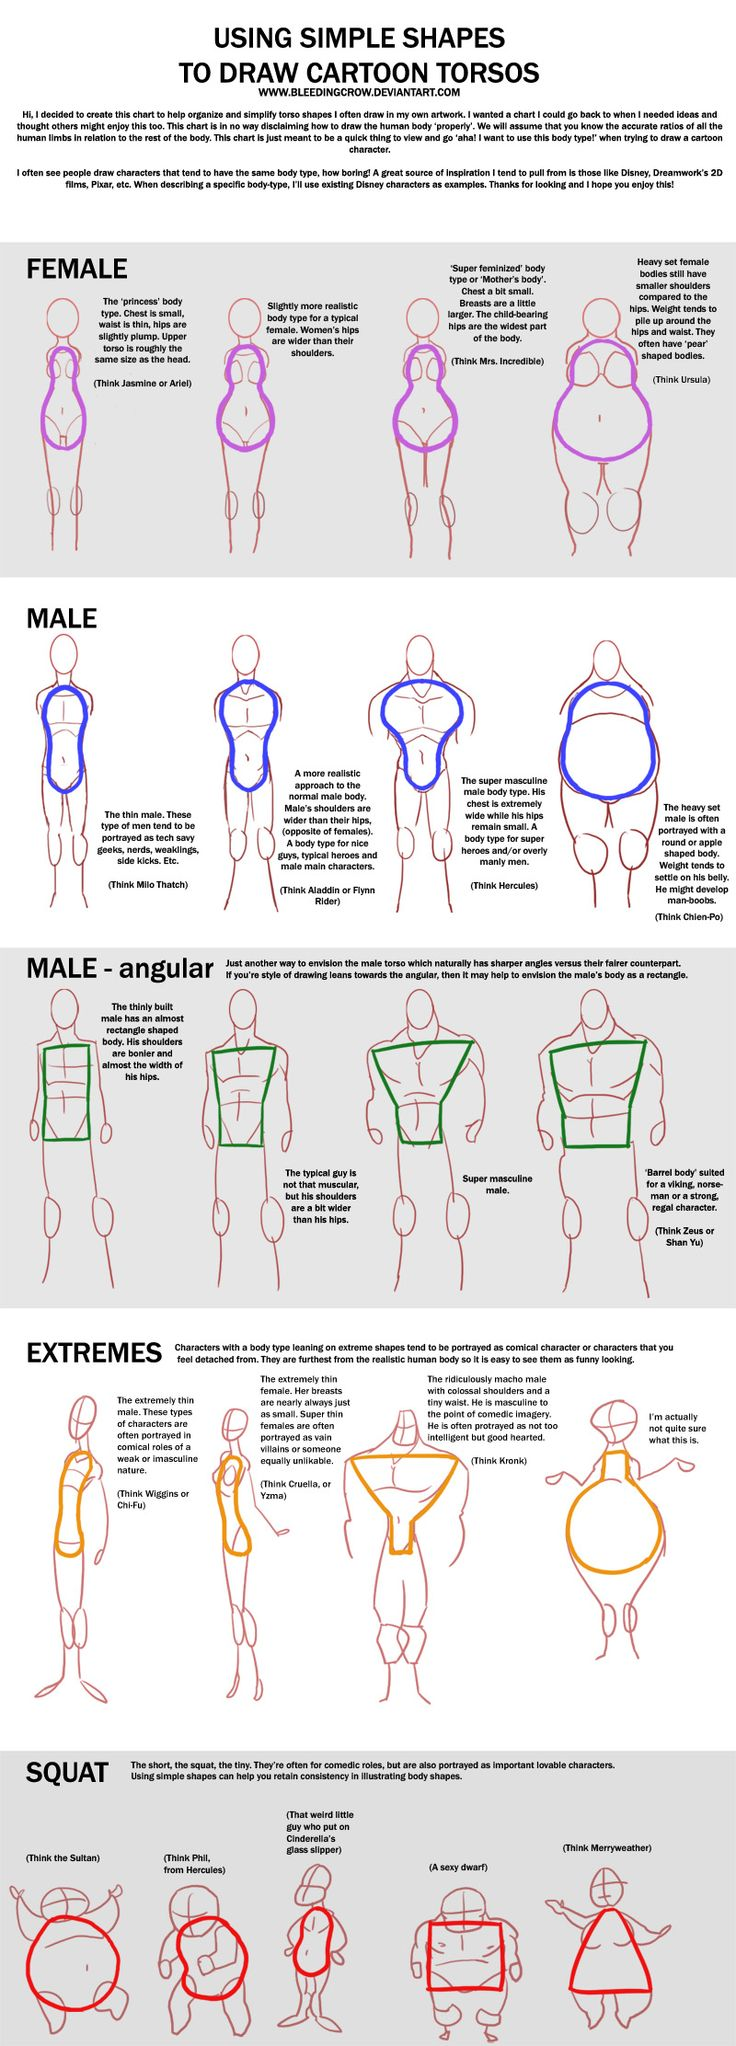 Cartoon Torso Tutorial via deviantArt